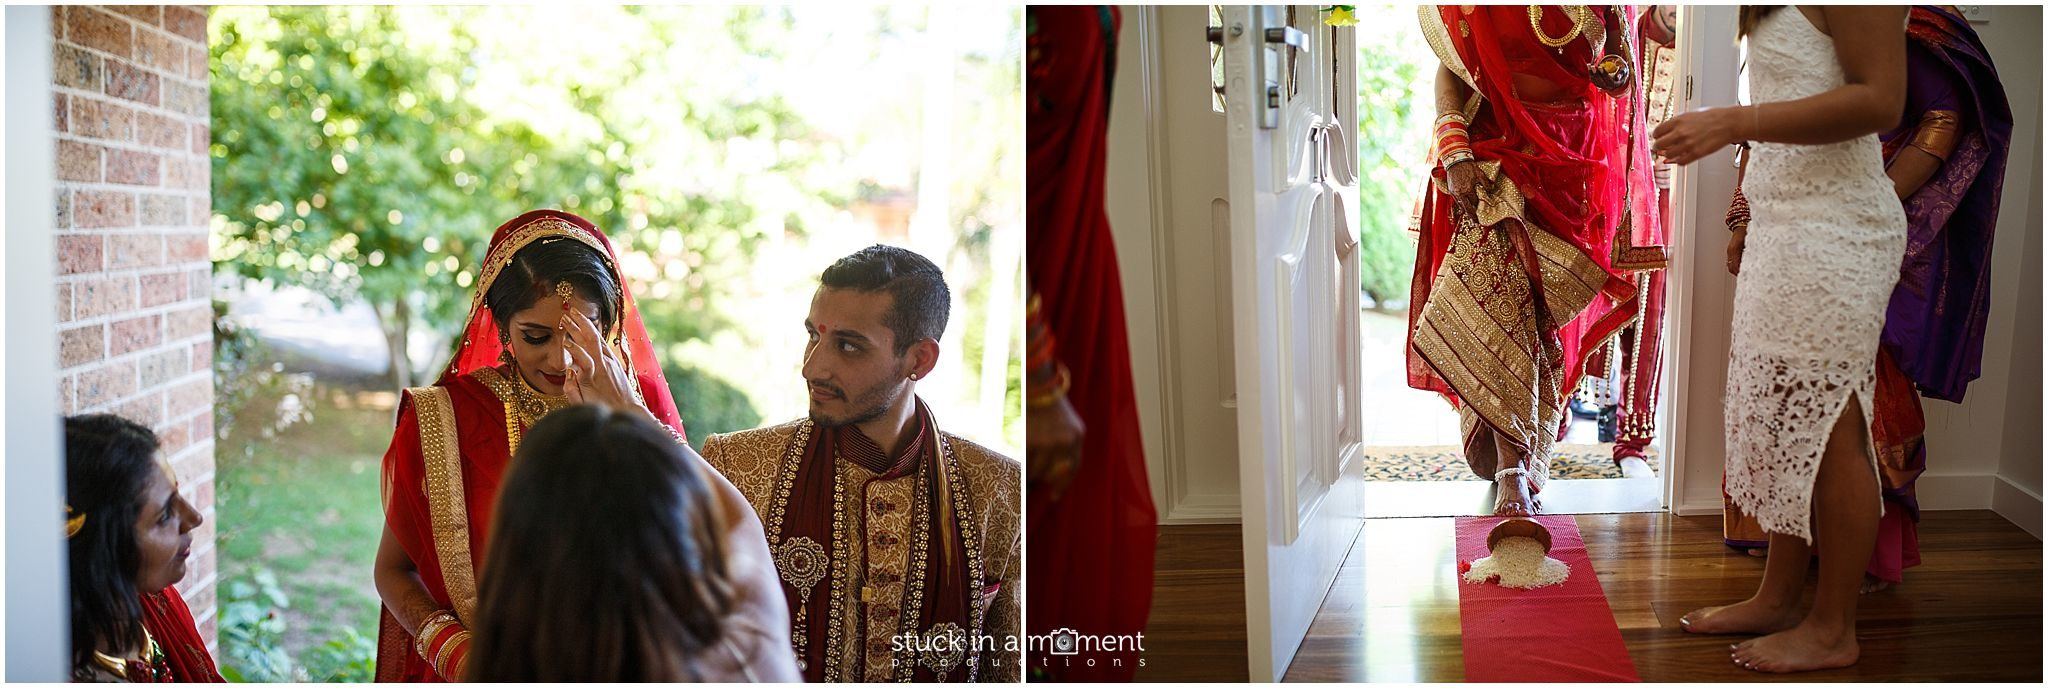 Sydney Hindu Wedding Photographer Macquarie Paradiso